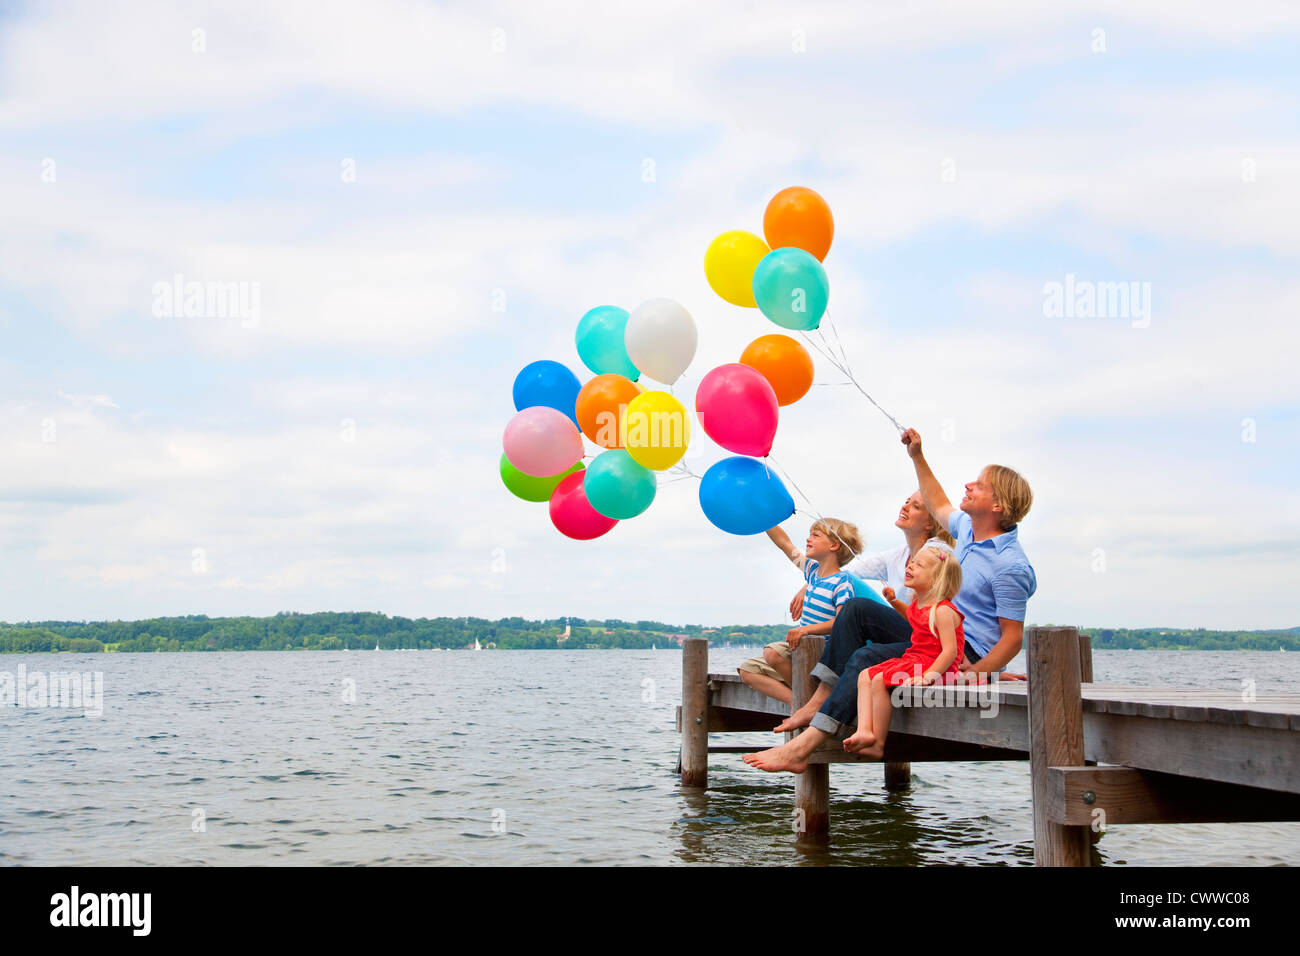 Family holding balloons on wooden pier - Stock Image